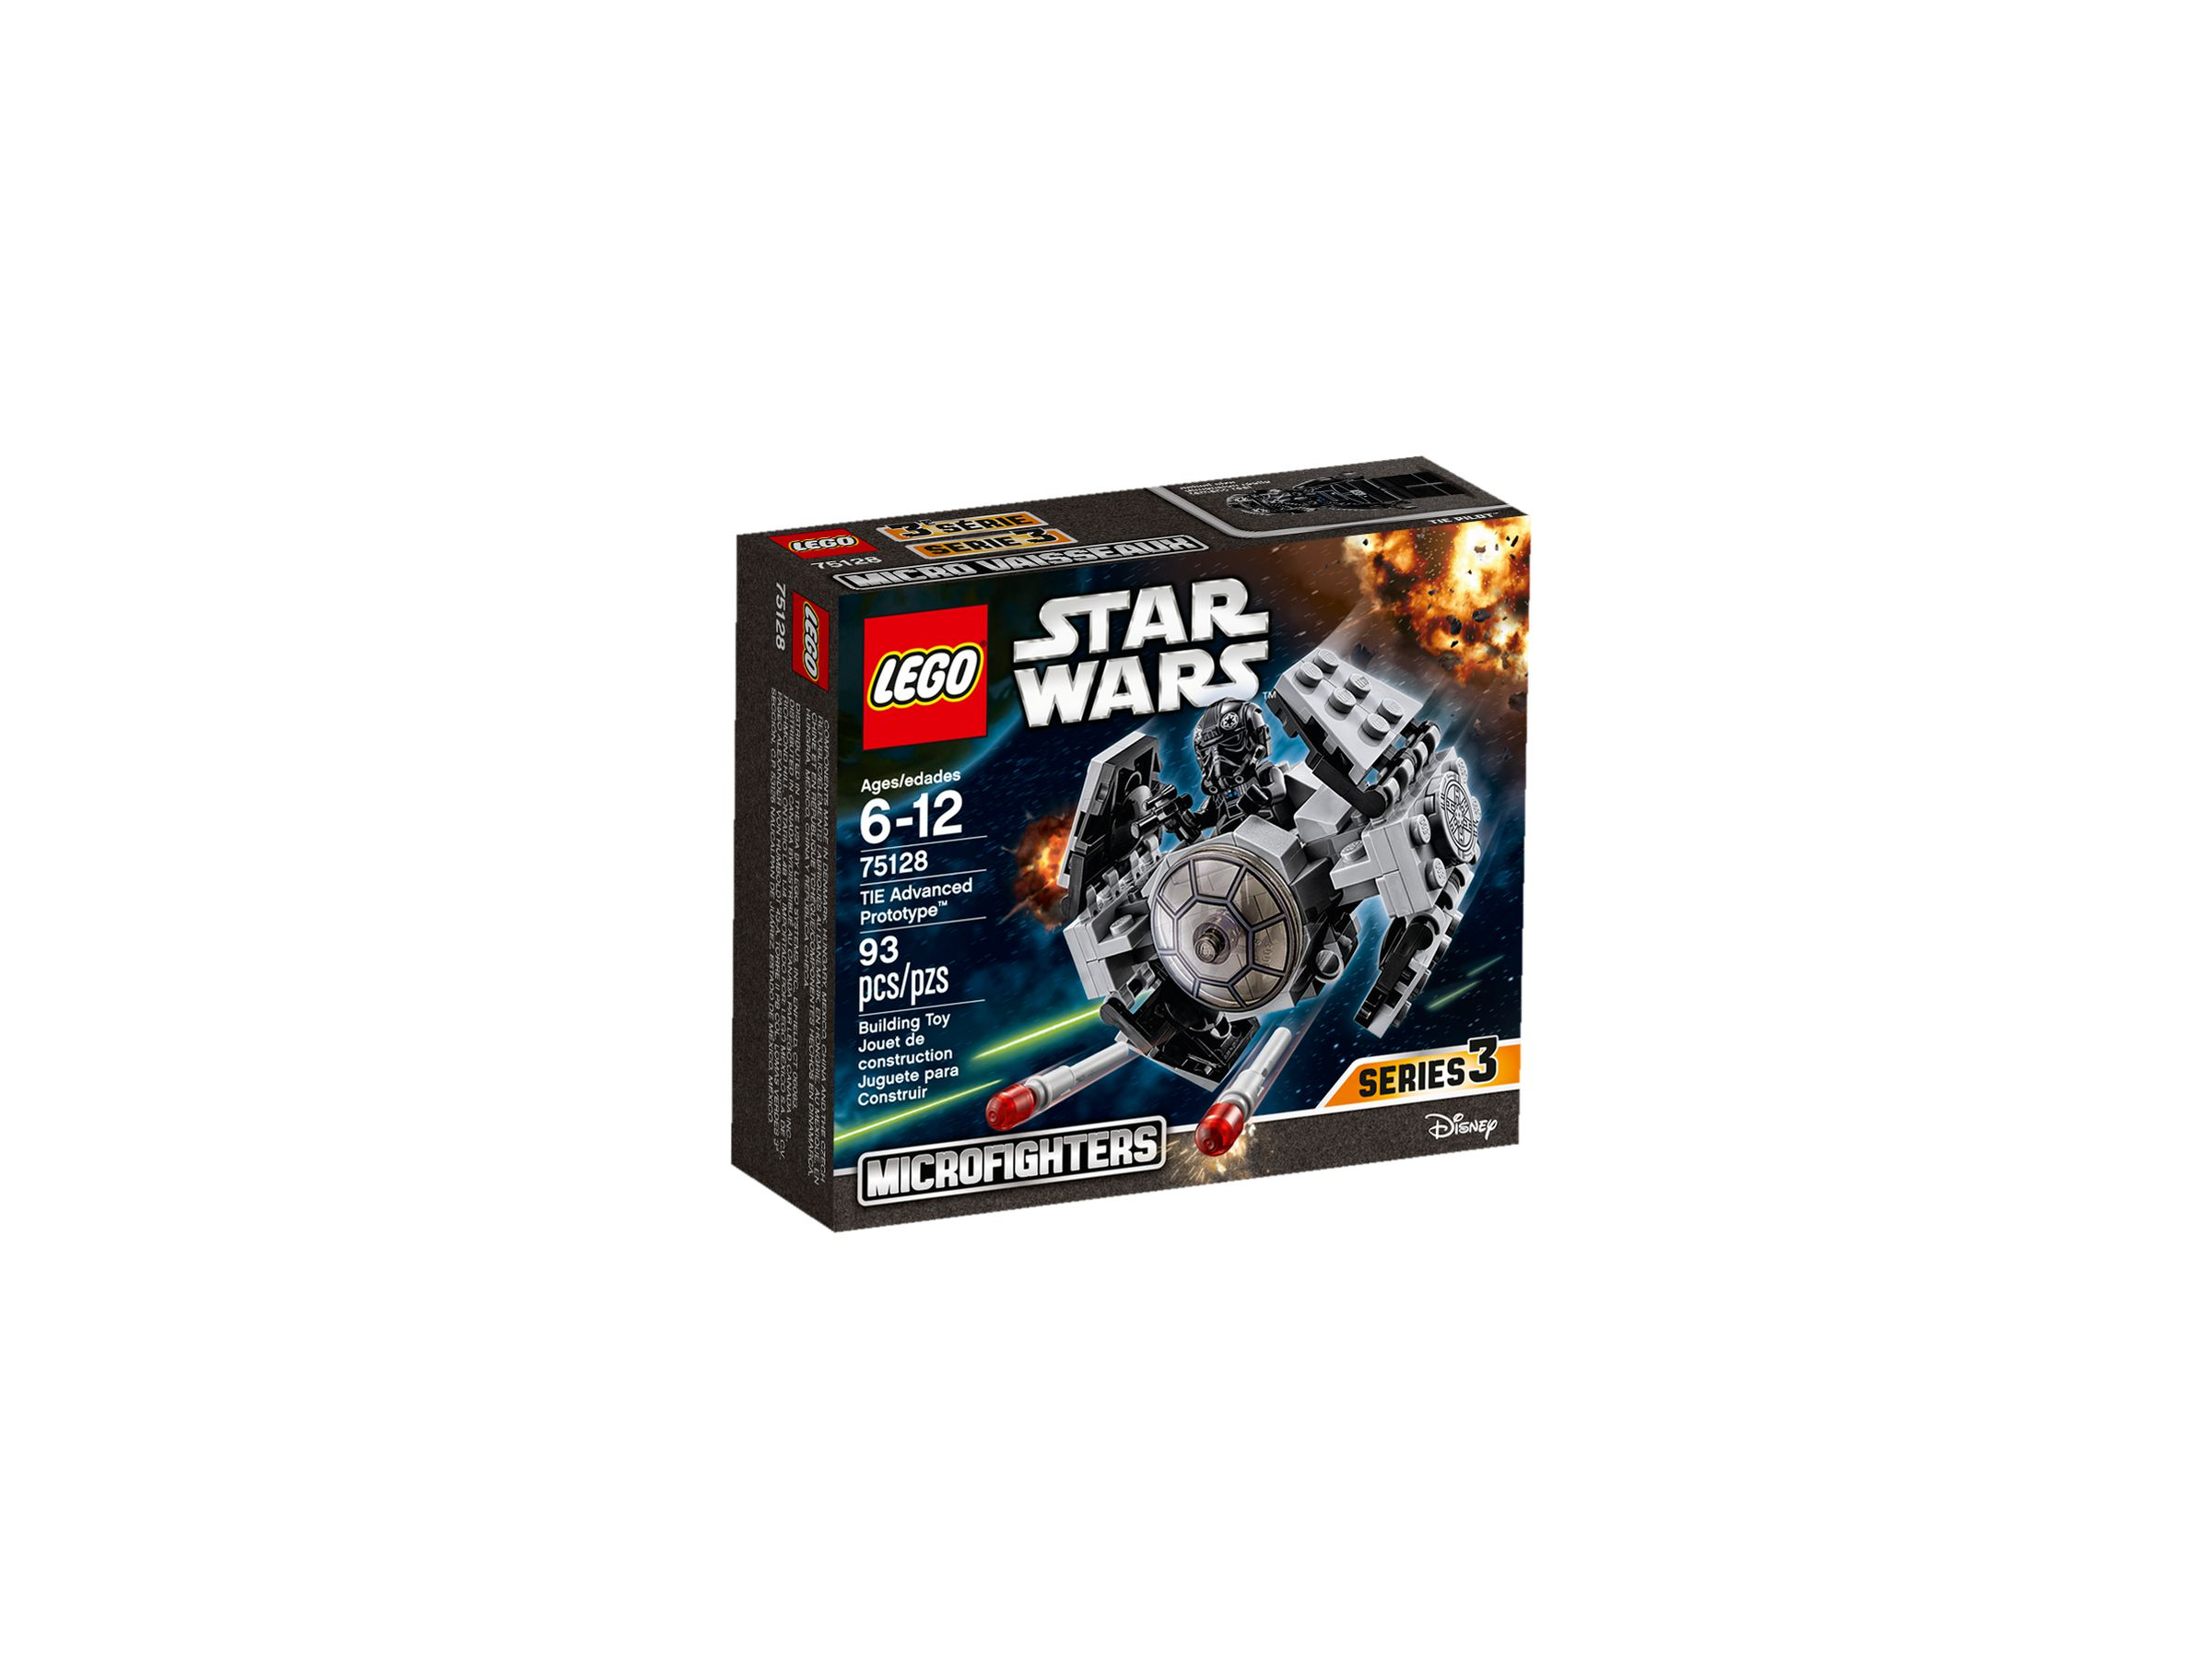 LEGO Star Wars 75128 TIE Advanced Prototype™ LEGO_75128_alt1.jpg